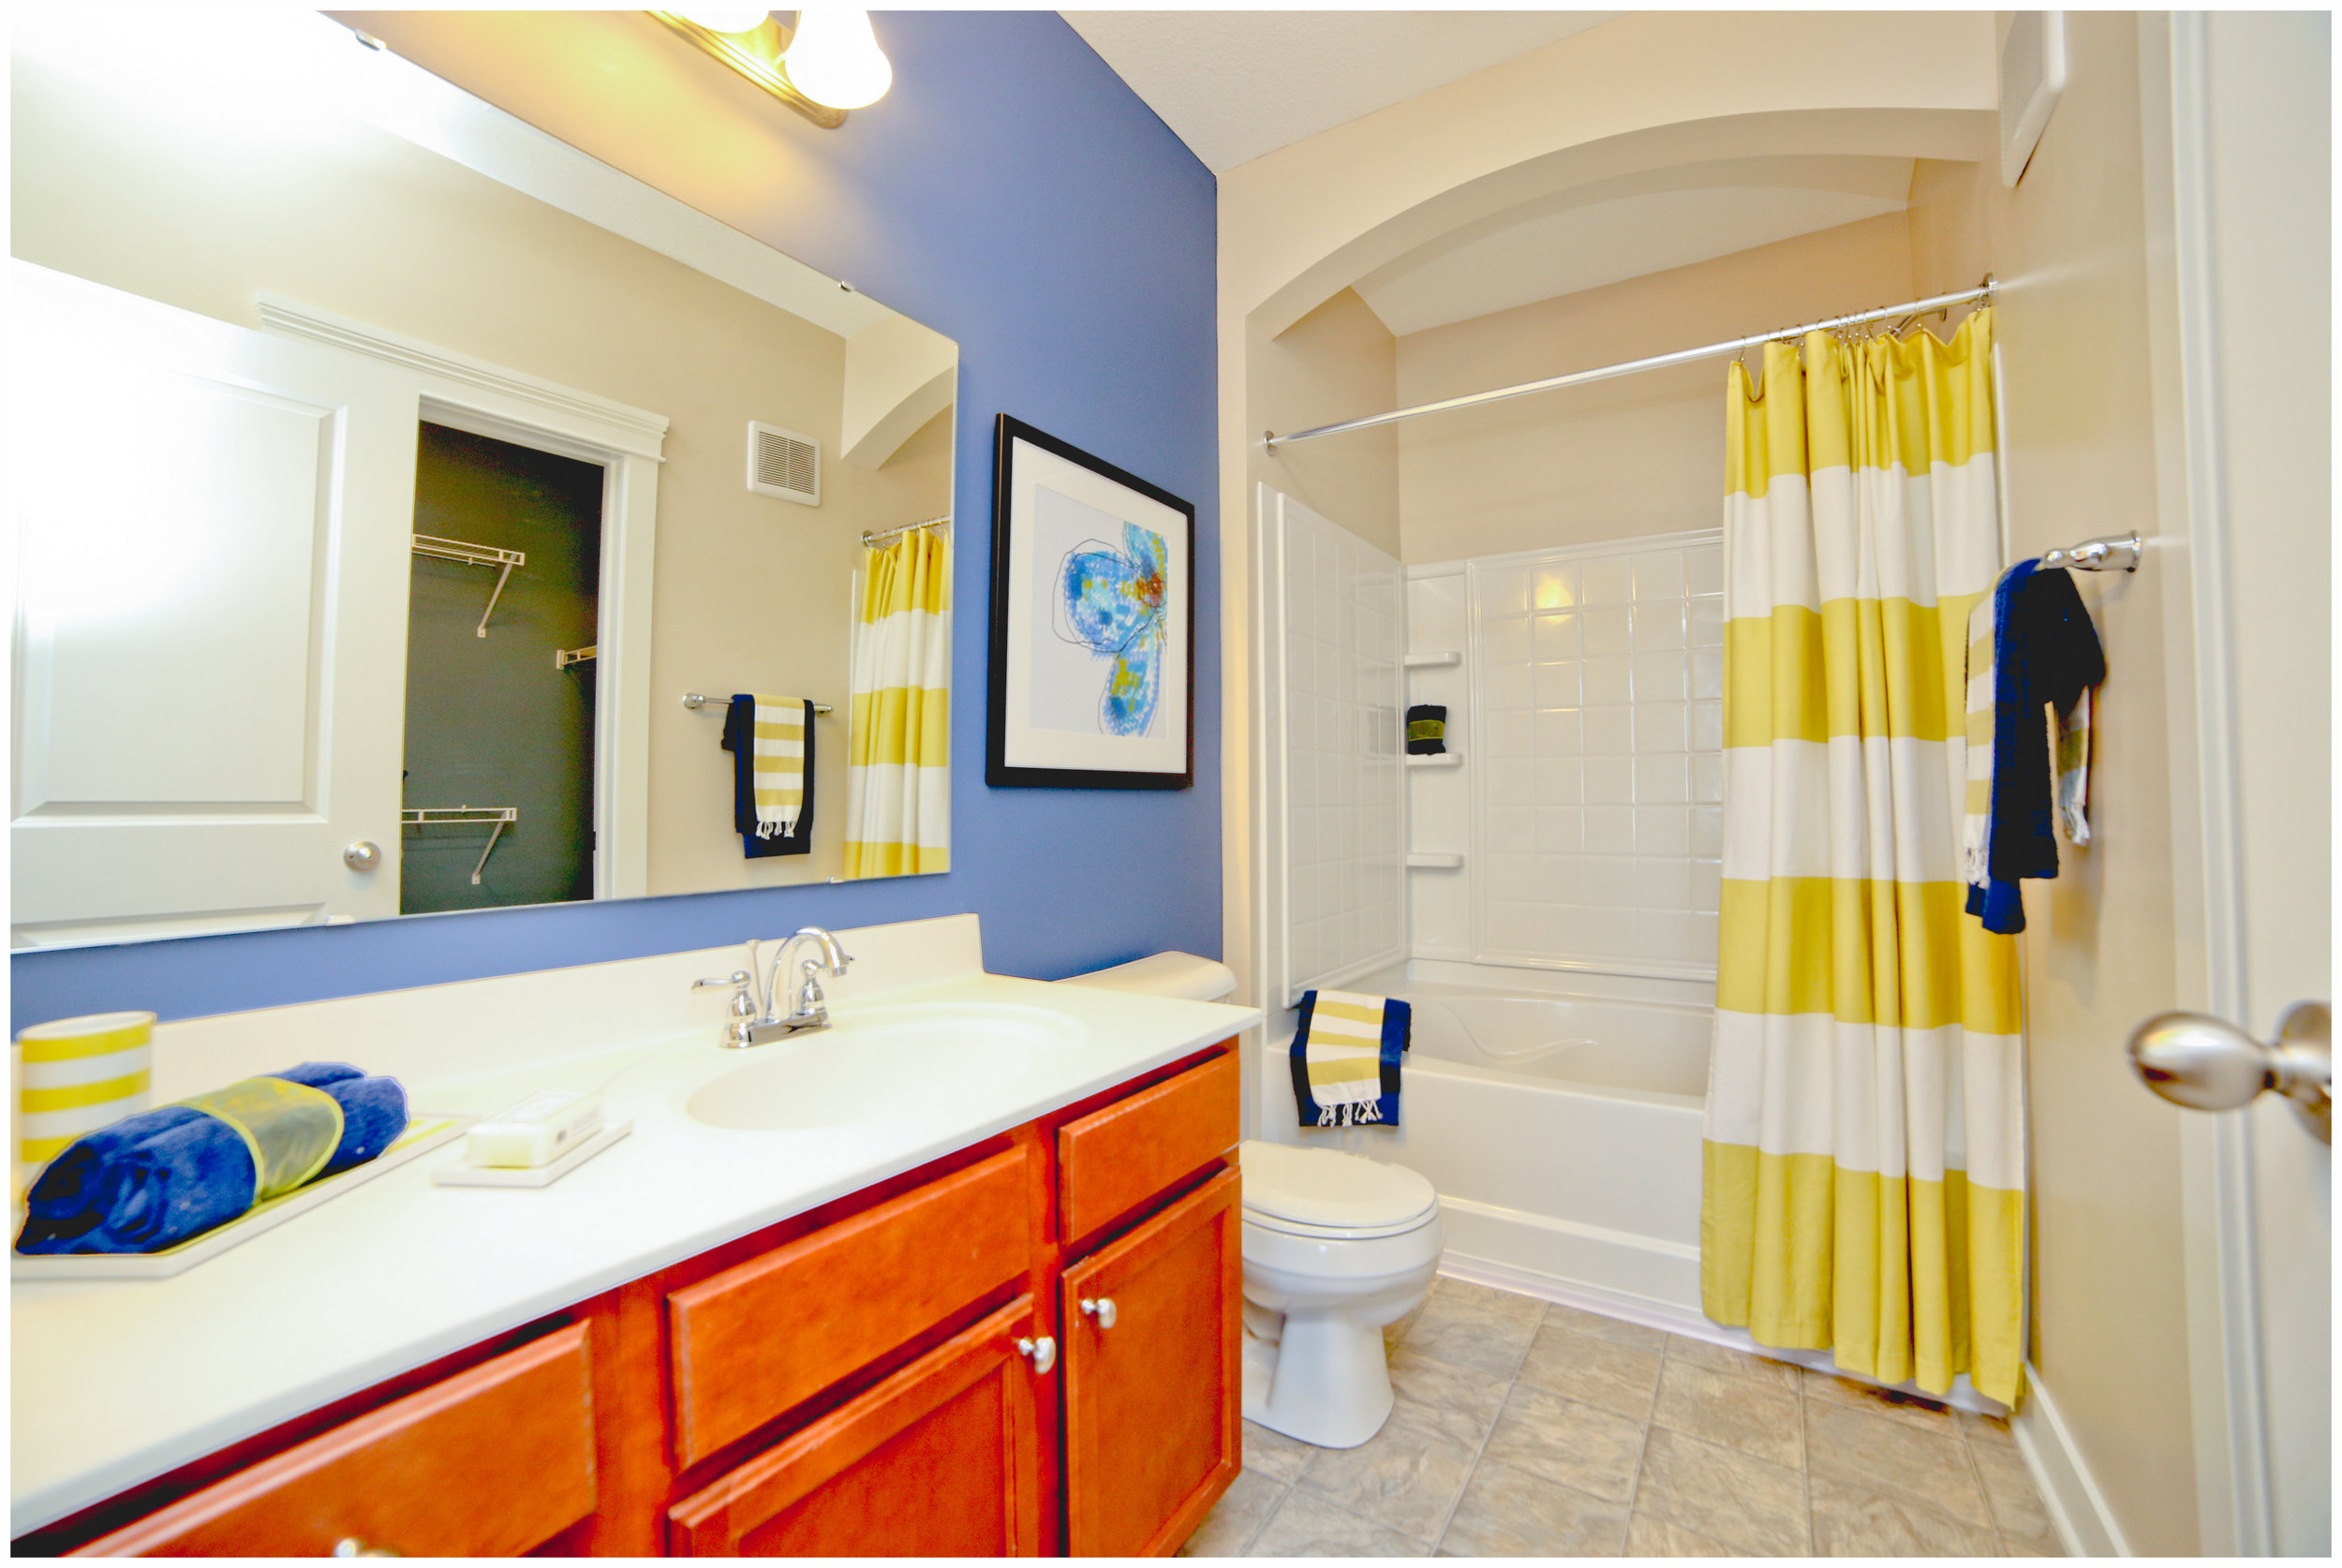 USF - model bathroom 1 (apartment).jpg